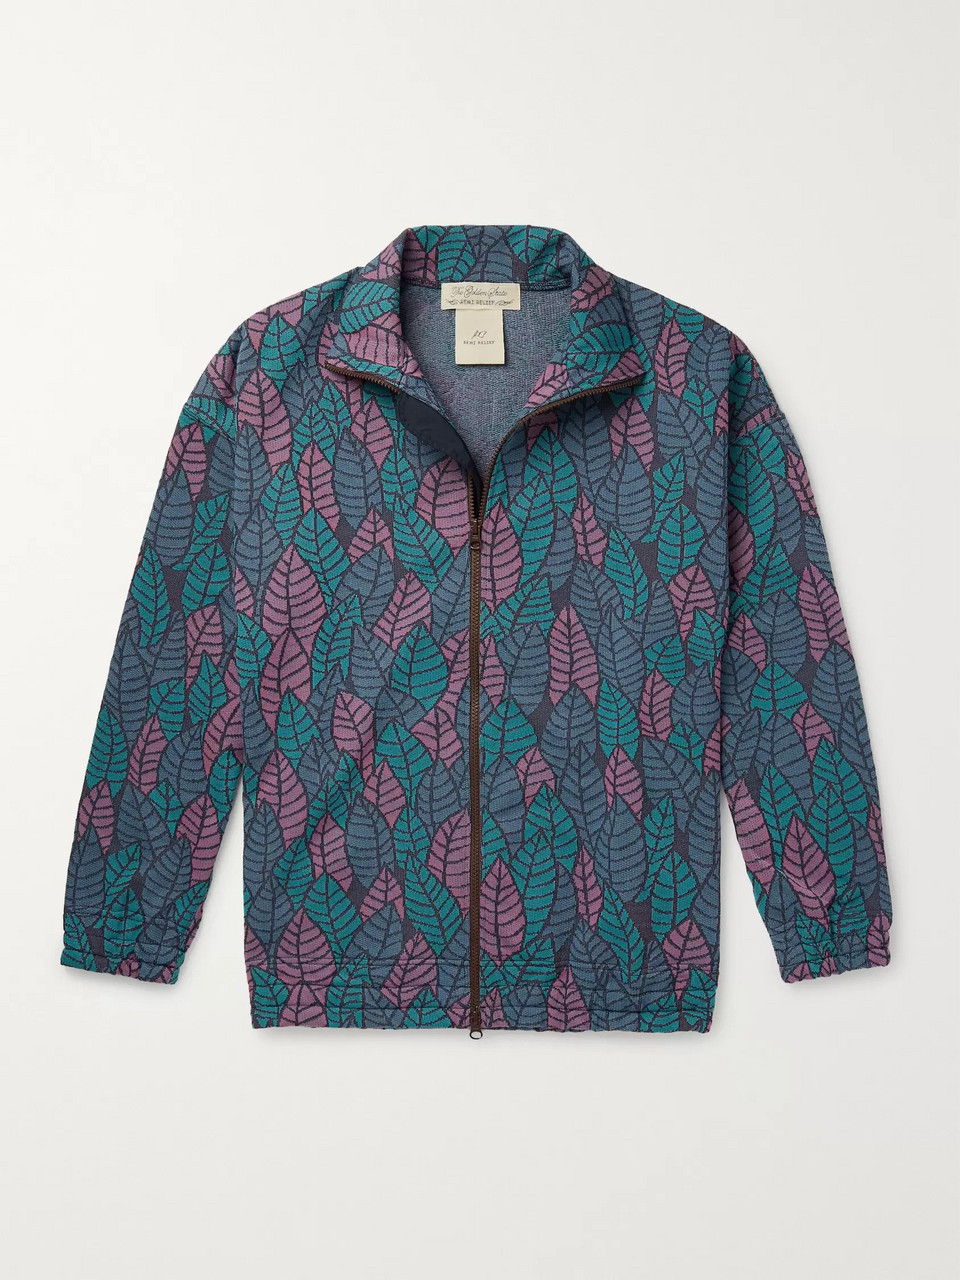 Remi Relief Jacquard-Knit Zip-Up Sweatshirt